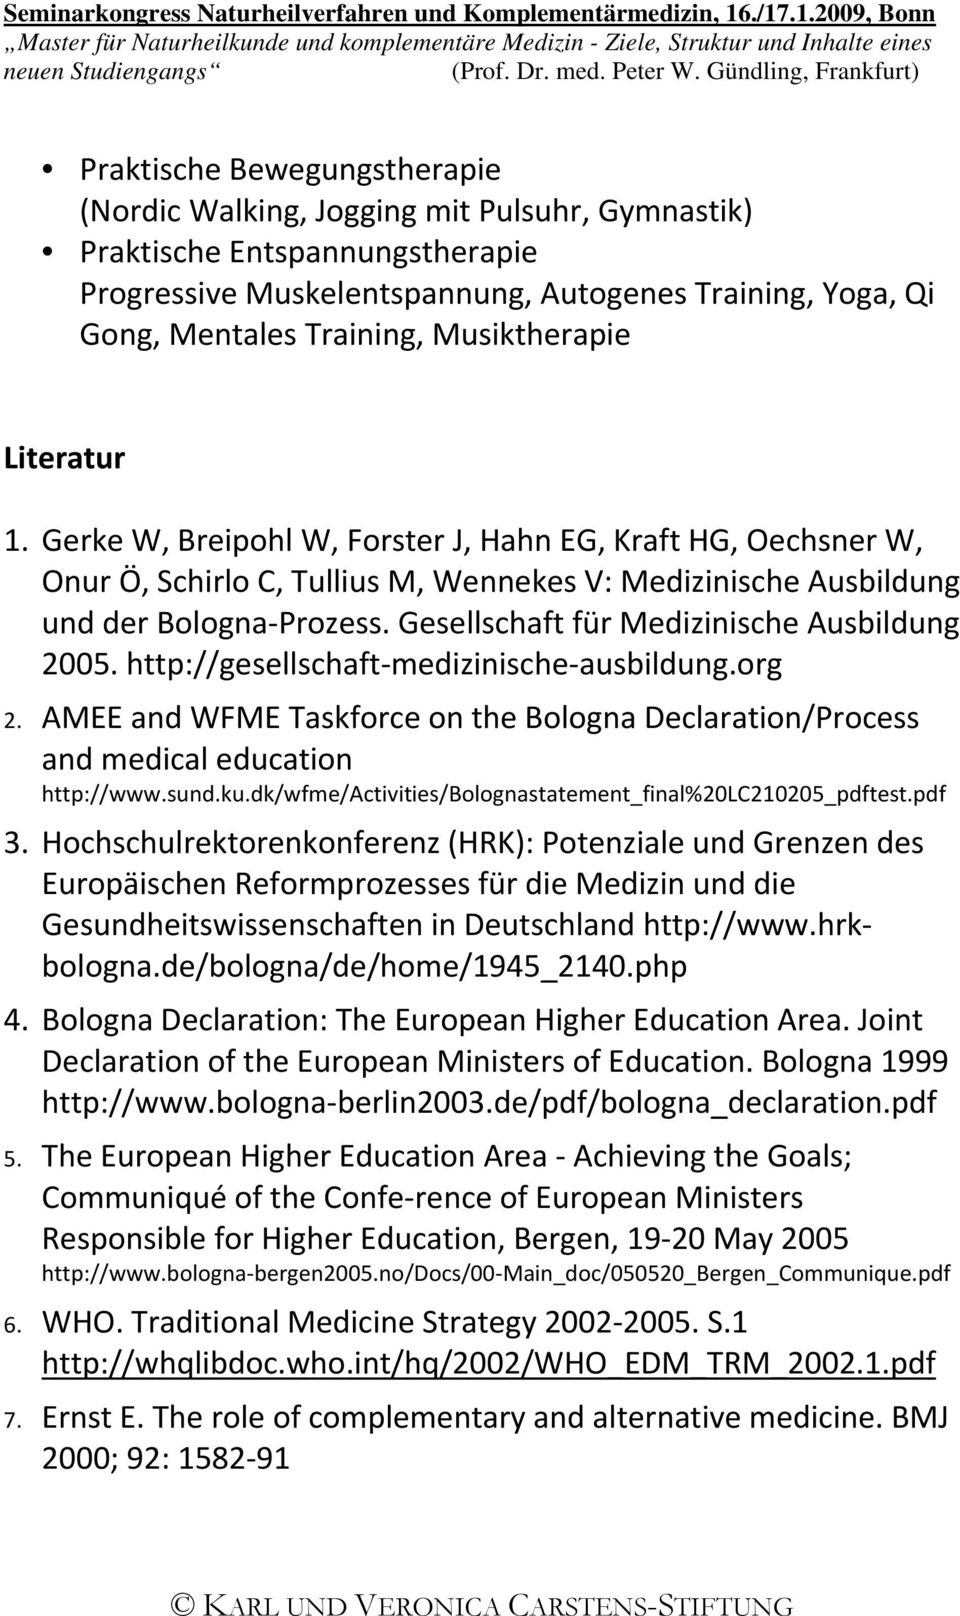 Gesellschaft für Medizinische Ausbildung 005. http://gesellschaft medizinische ausbildung.org. AMEE and WFME Taskforce on the Bologna Declaration/Process and medical education http://www.sund.ku.